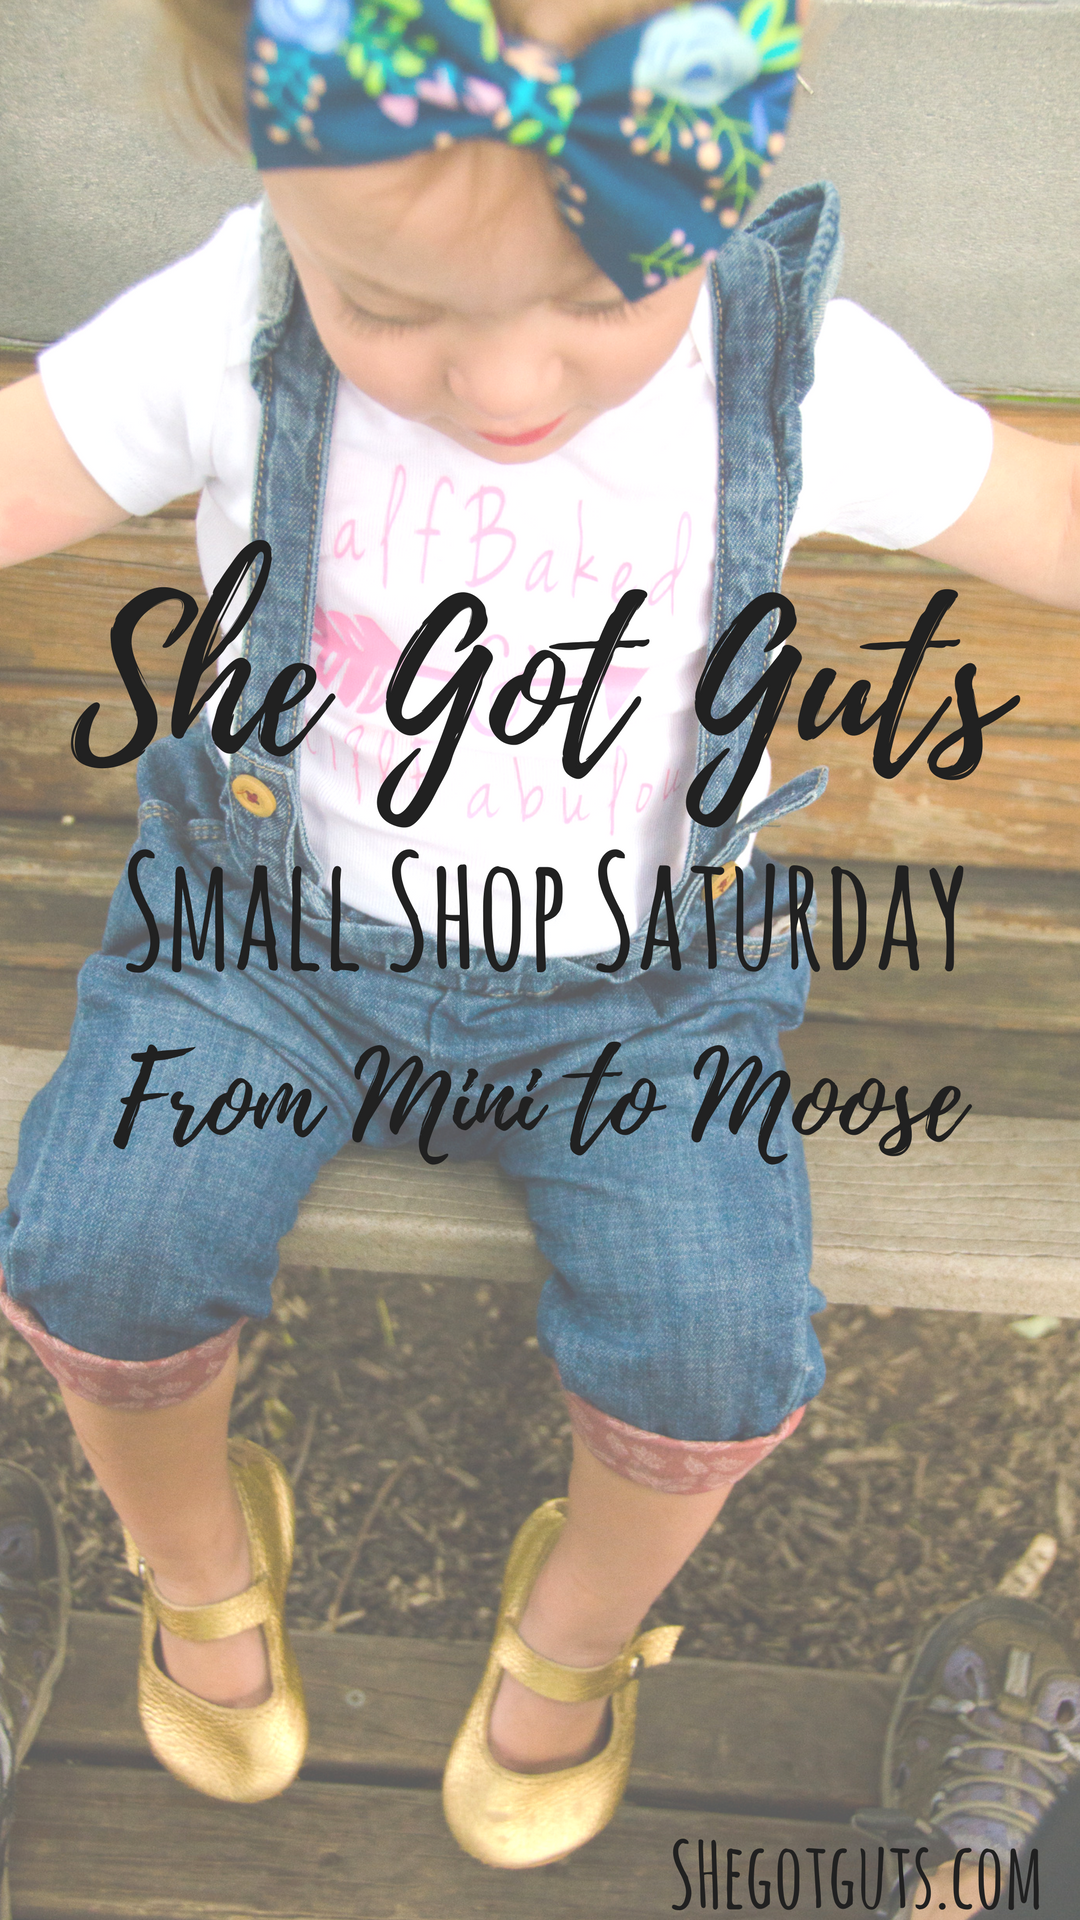 Small Shop Saturday - Mini to Moose - shegotguts.com